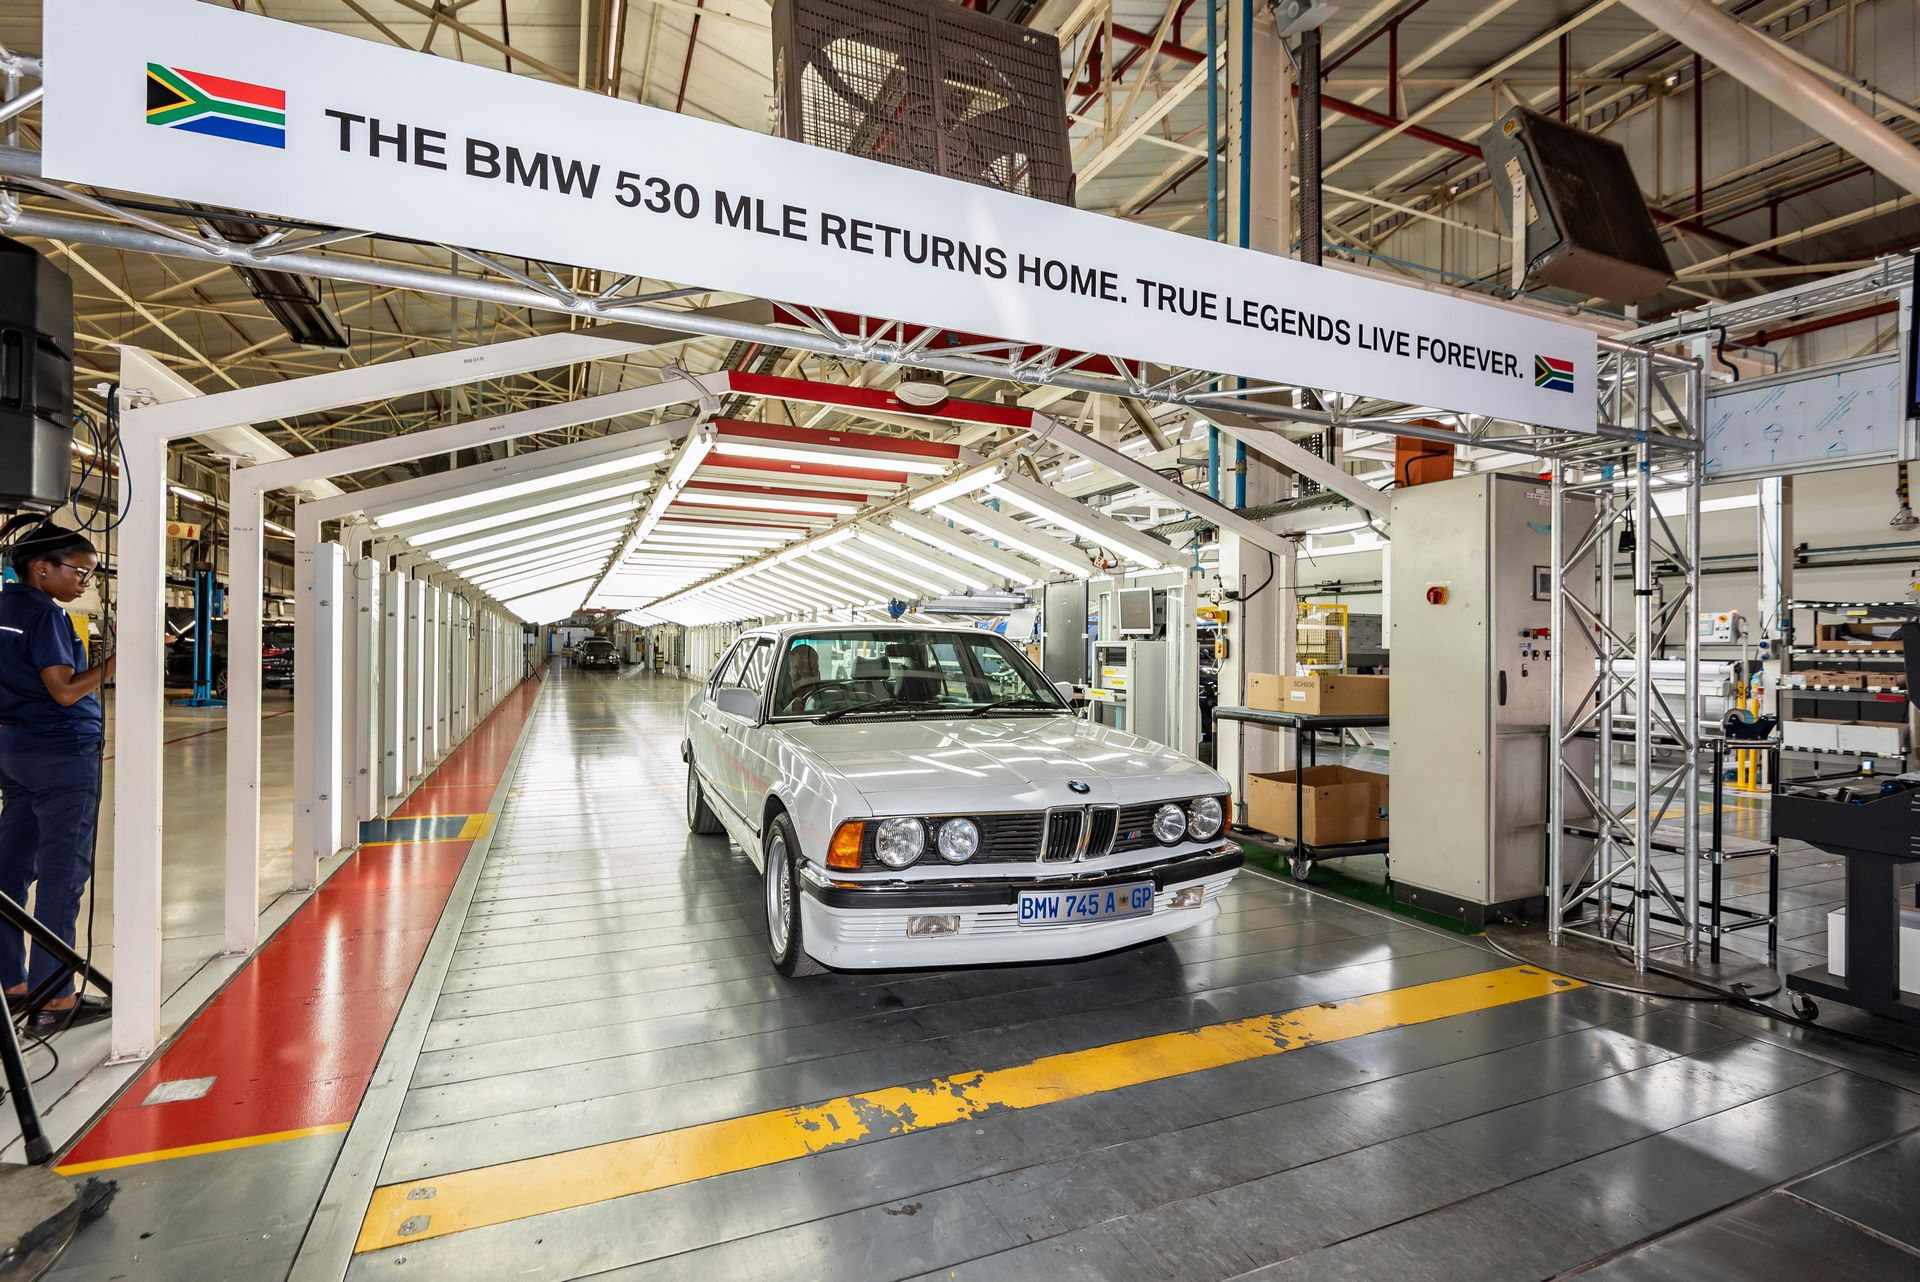 BMW-530-MLE-restoration-in-South-Africa-66